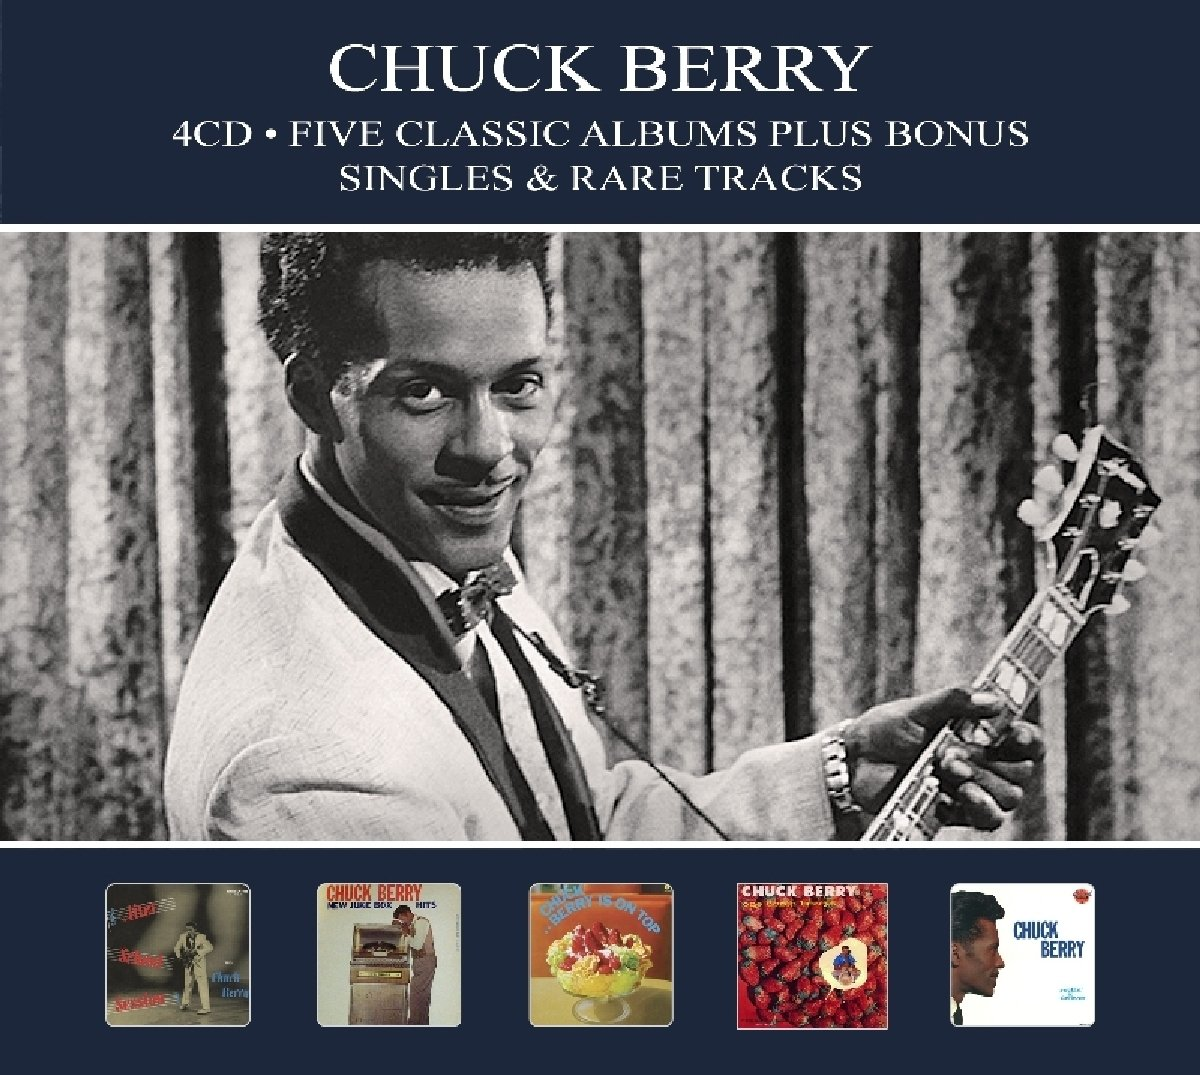 CD : Chuck Berry - 5 Classic Albums Plus Bonus Singles & Rare Tracks (Germany - Import)